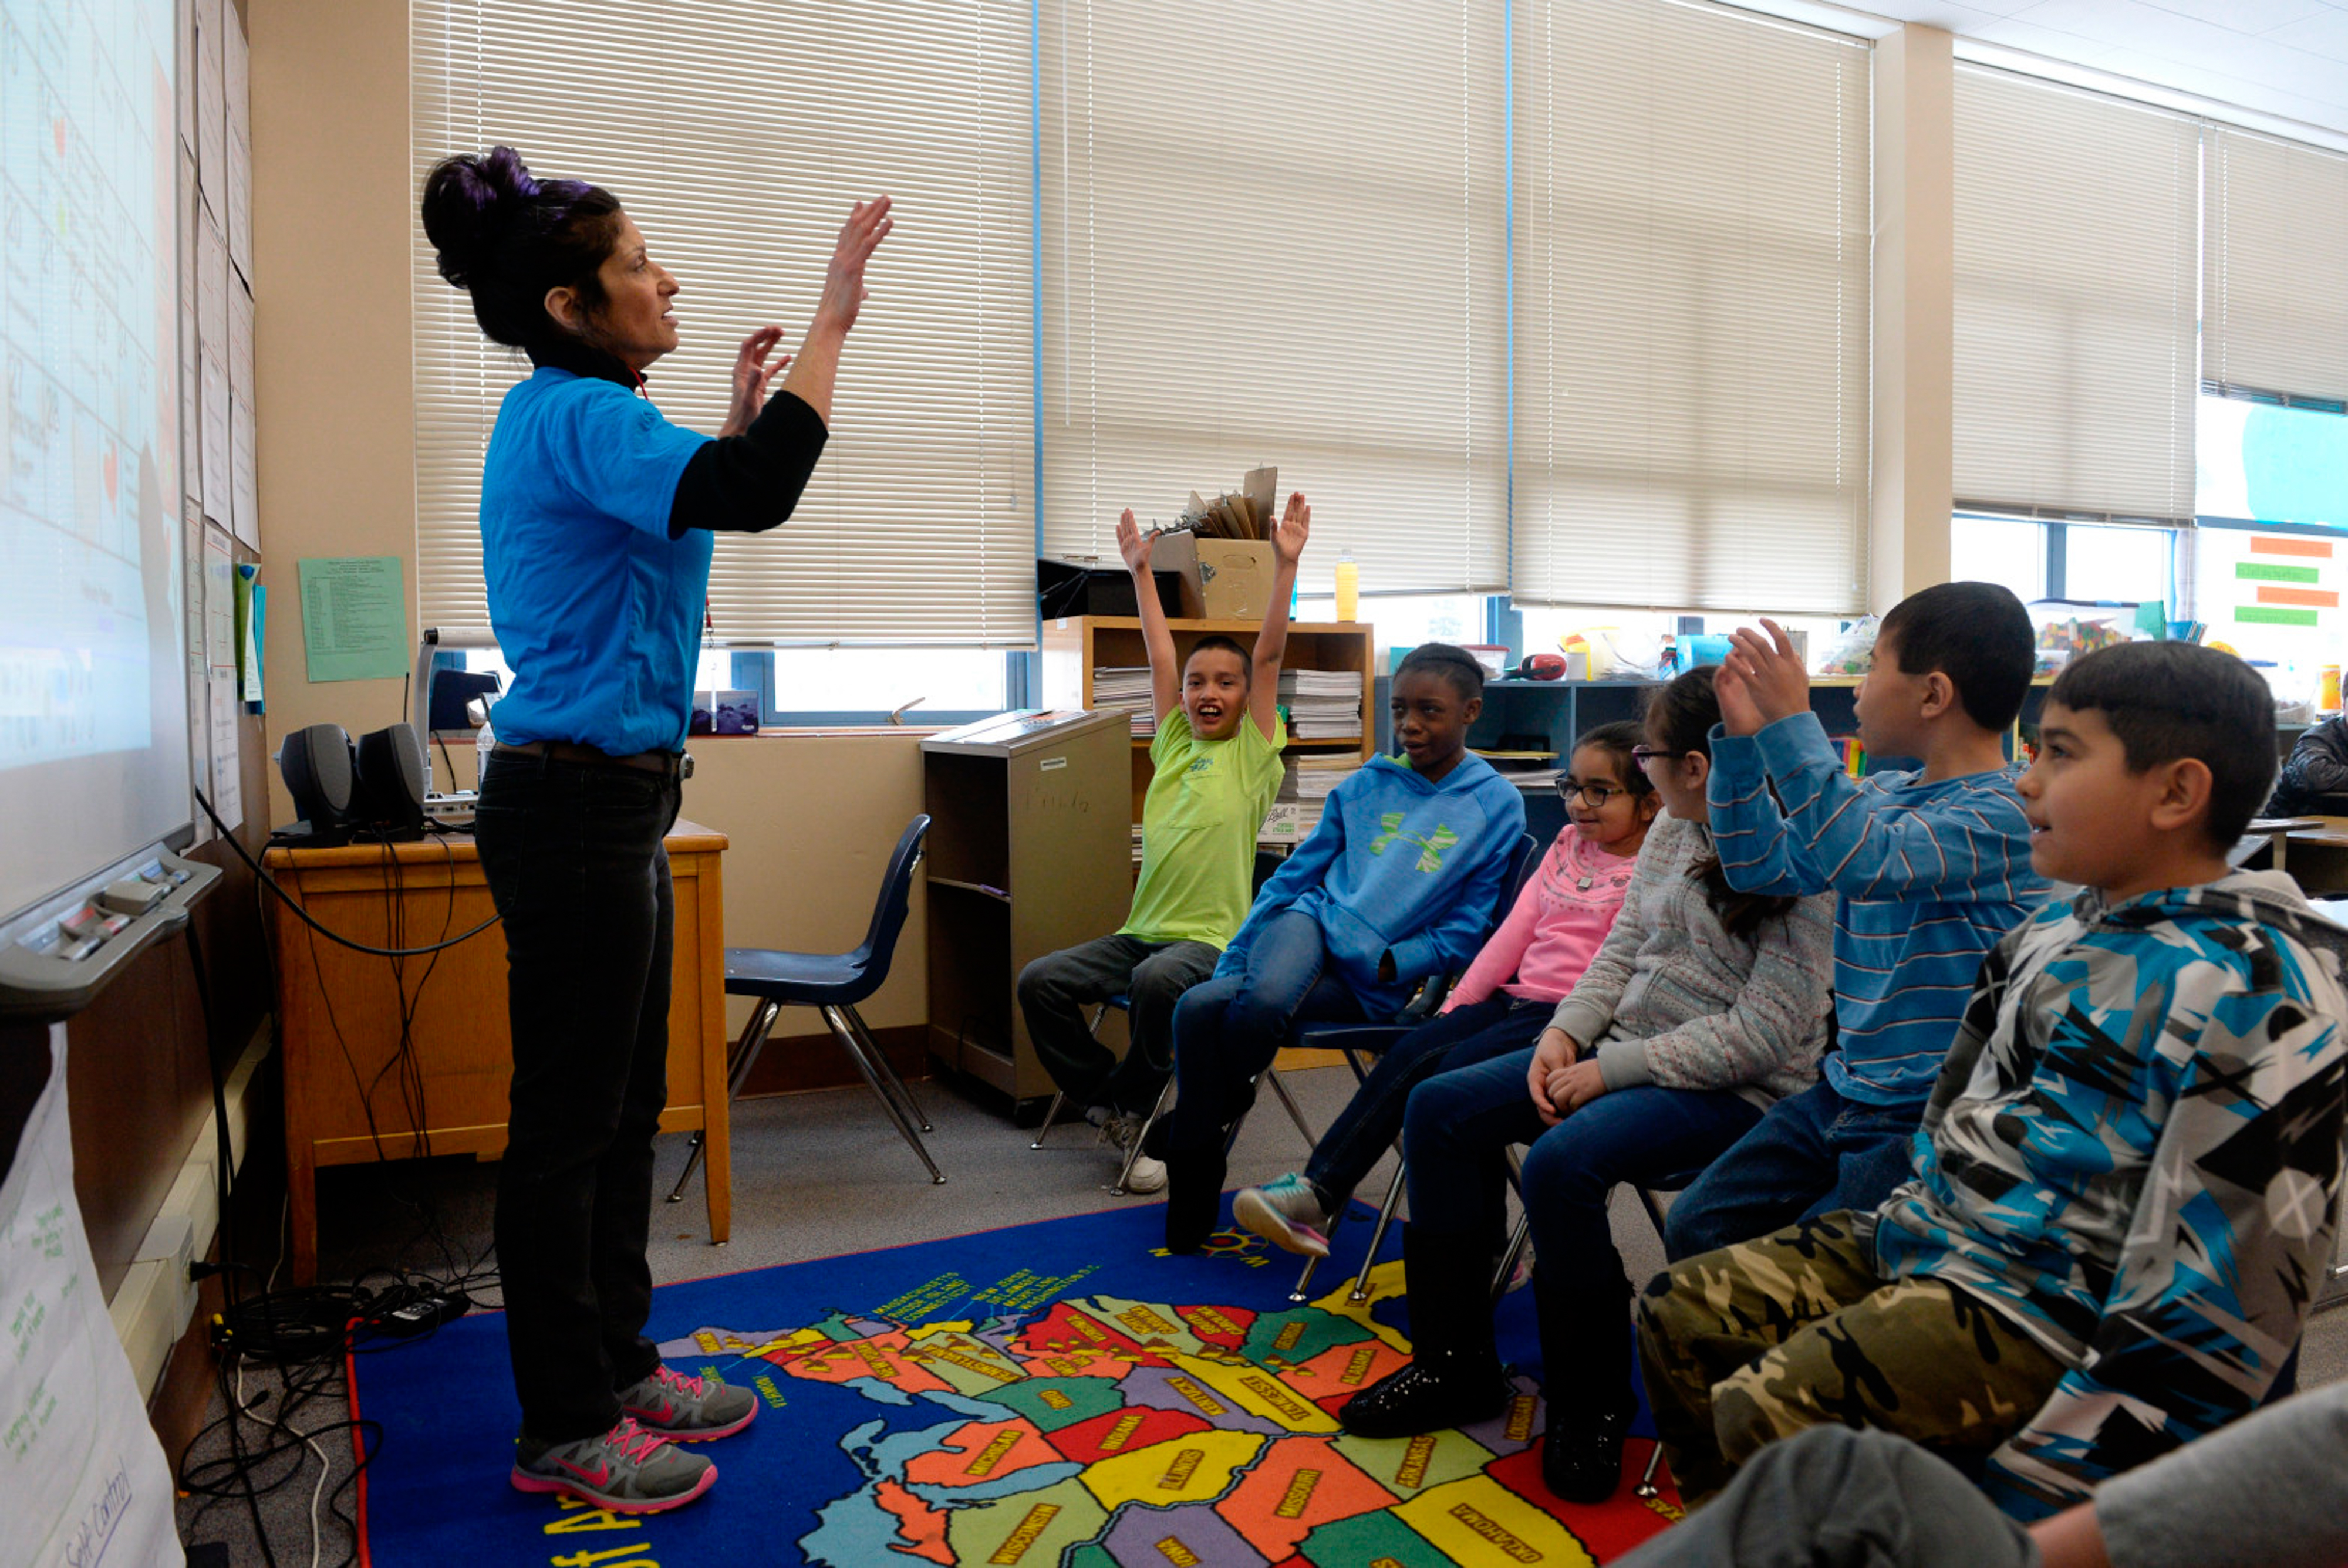 A group of six elementary students sit together and engage with their teacher, standing at the front of the classroom with her arms raised.